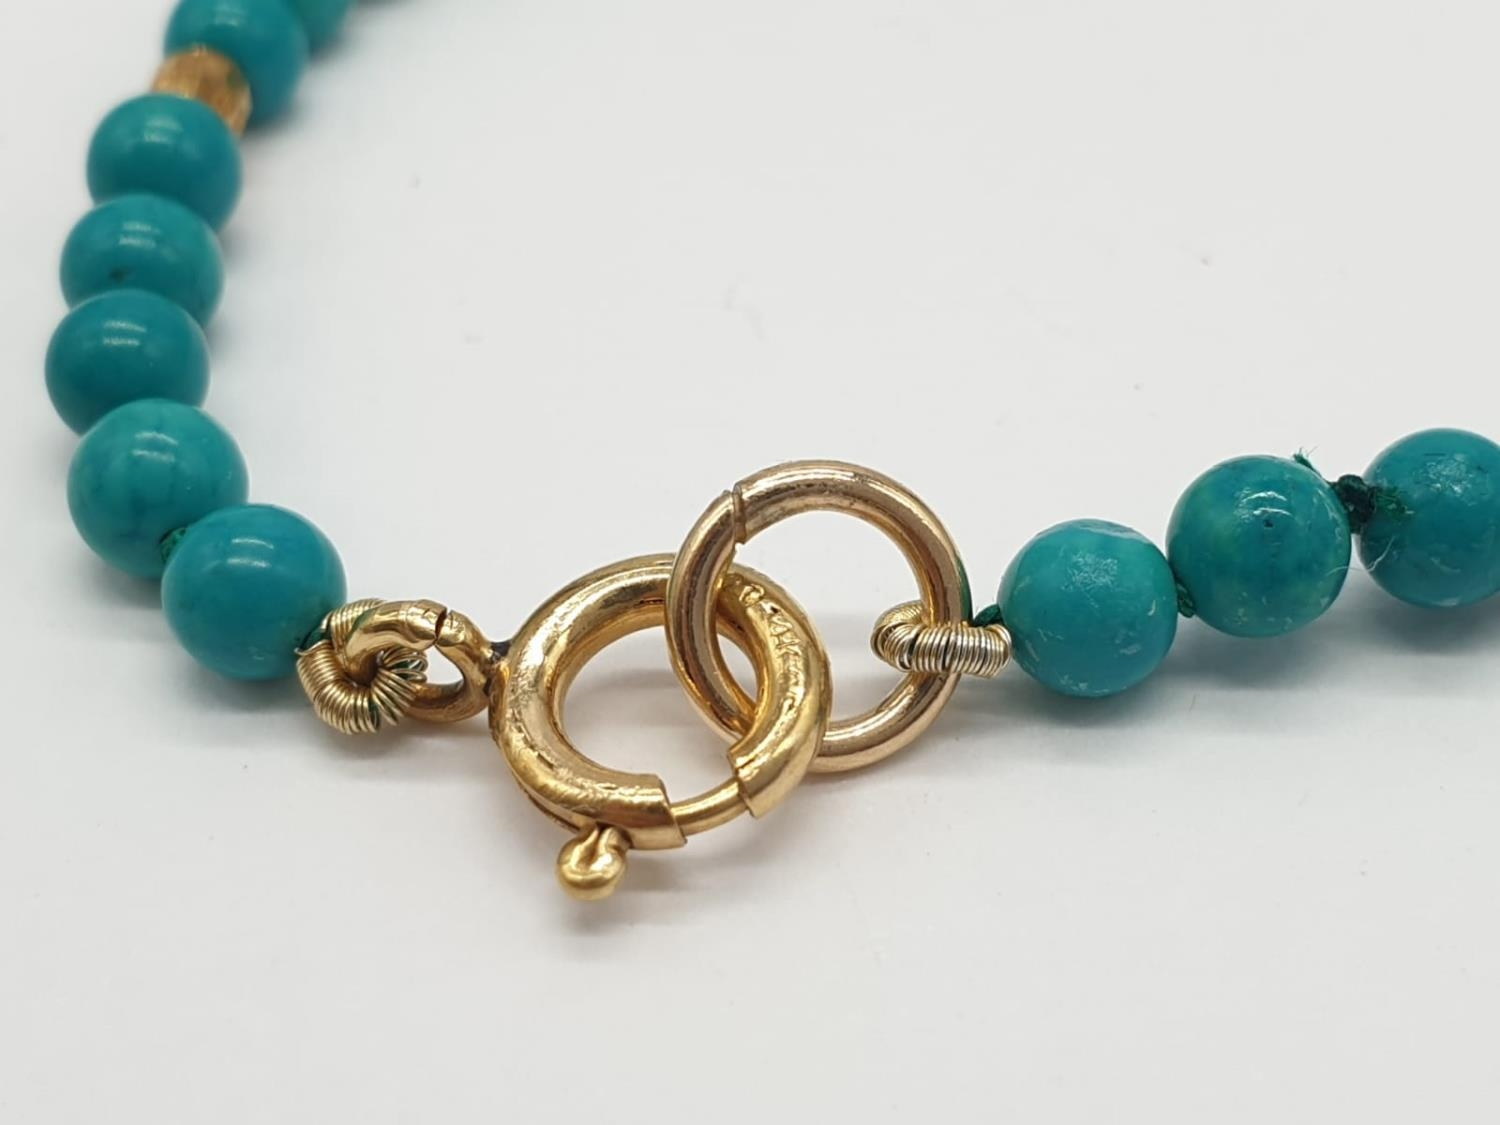 Turquoise and 9ct Gold NECKLACE. 10g 40cm - Image 4 of 5